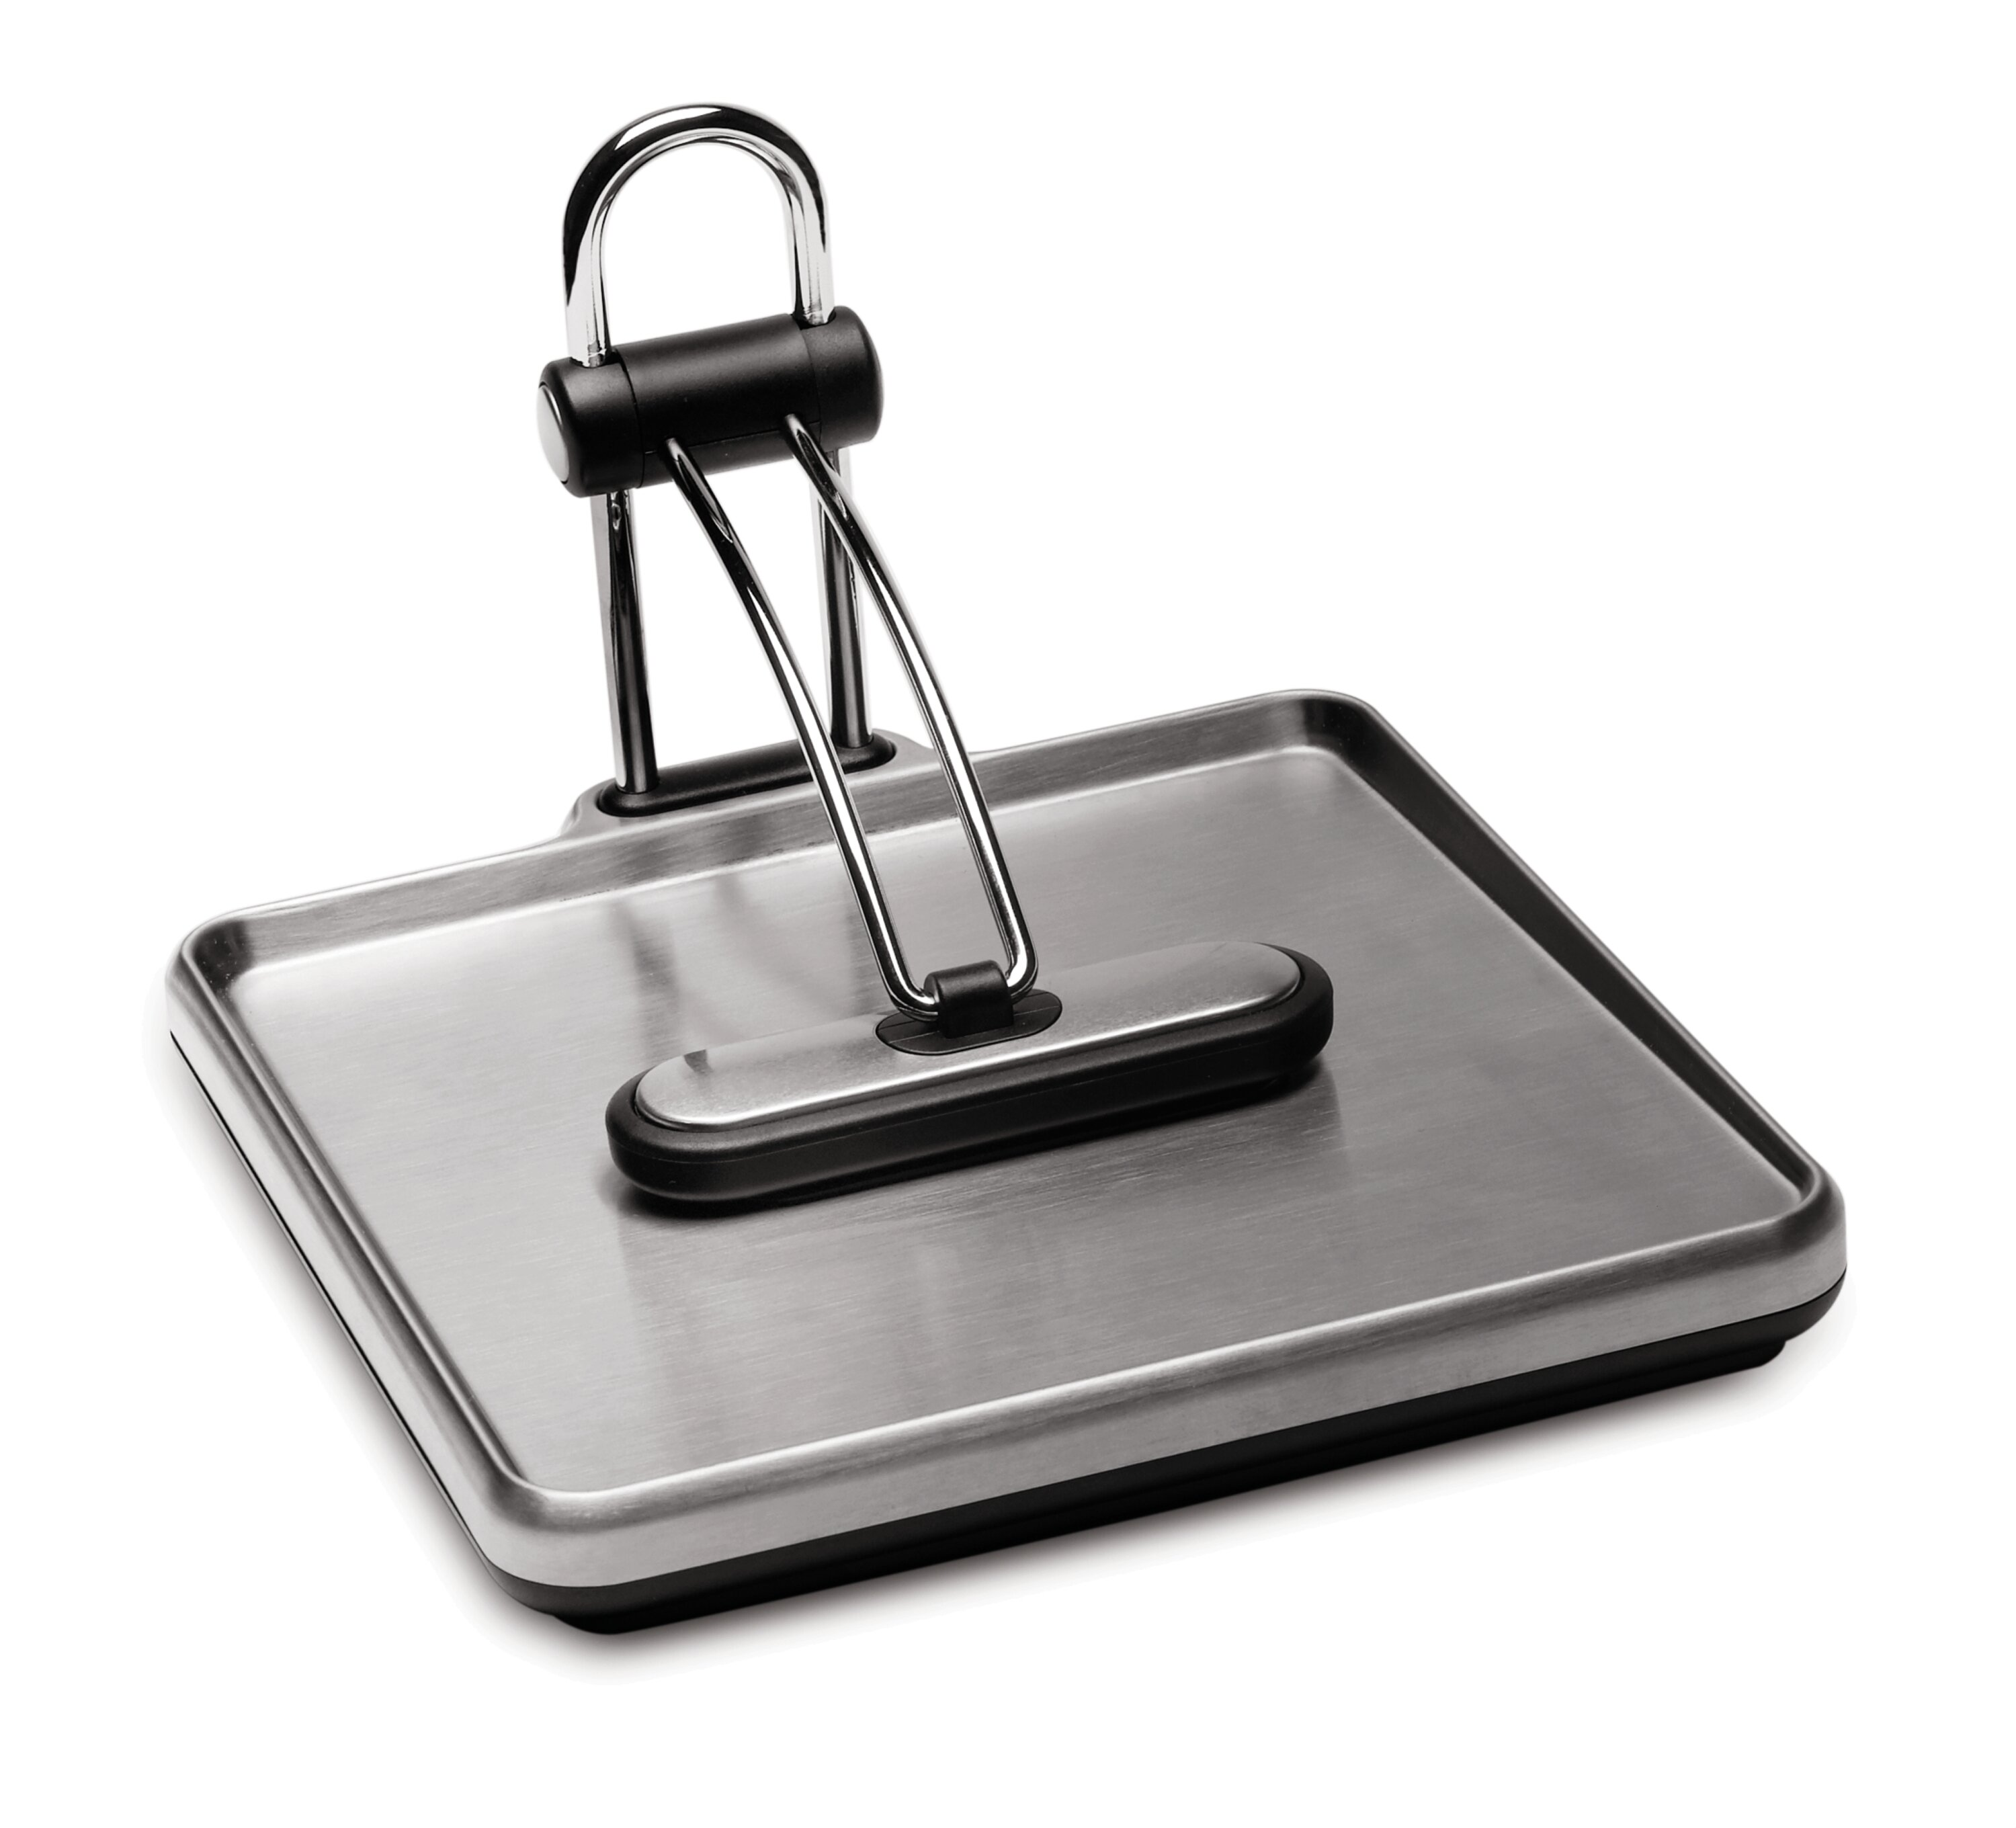 Cuisine Black Metal Party Dinner Picnic Napkin Holder with Weight